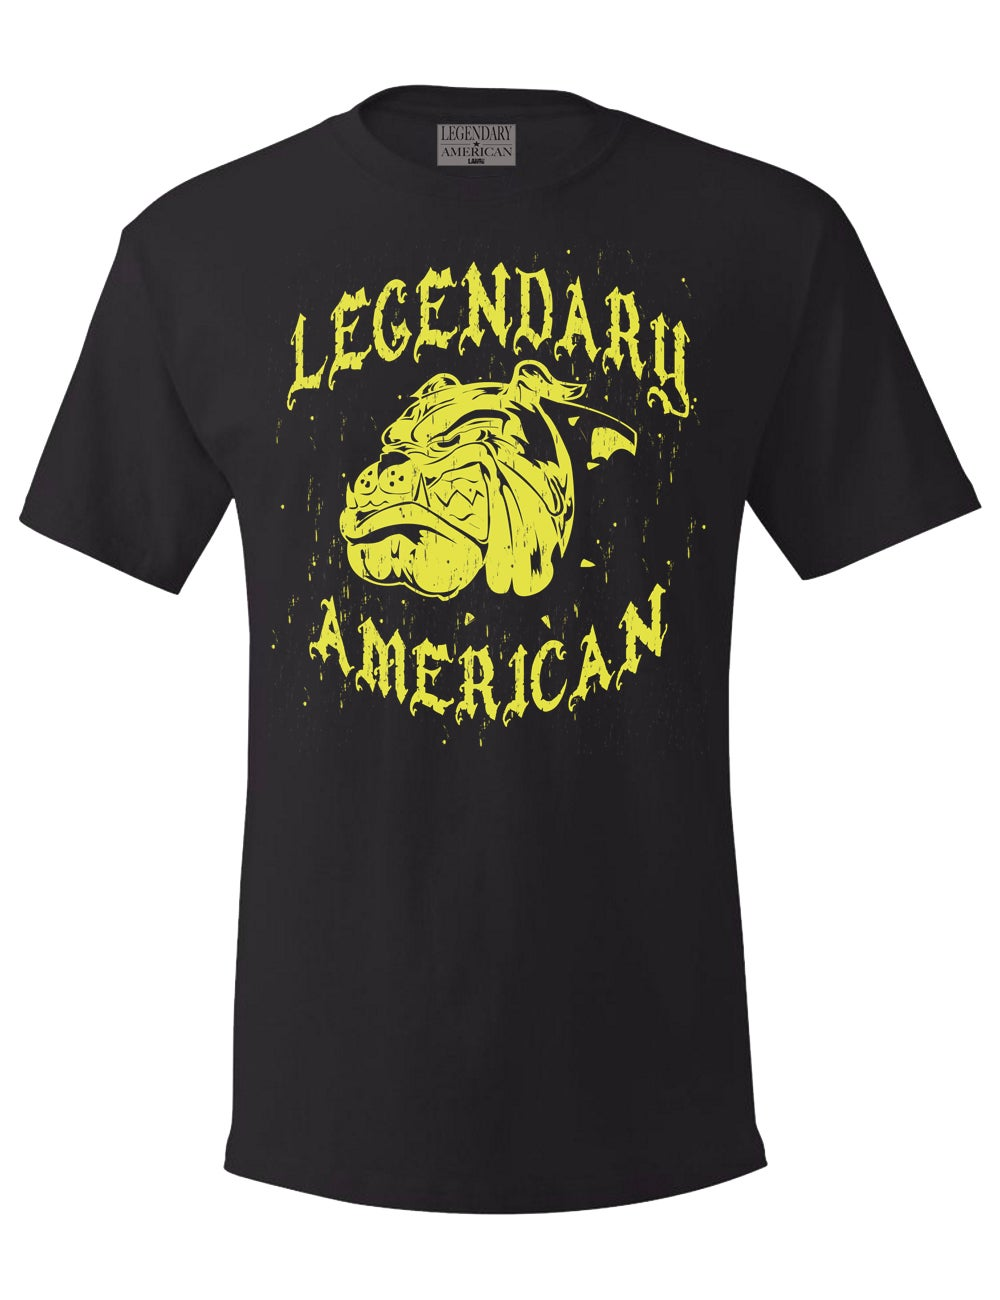 Image of Legendary American Bulldog Tee in gold